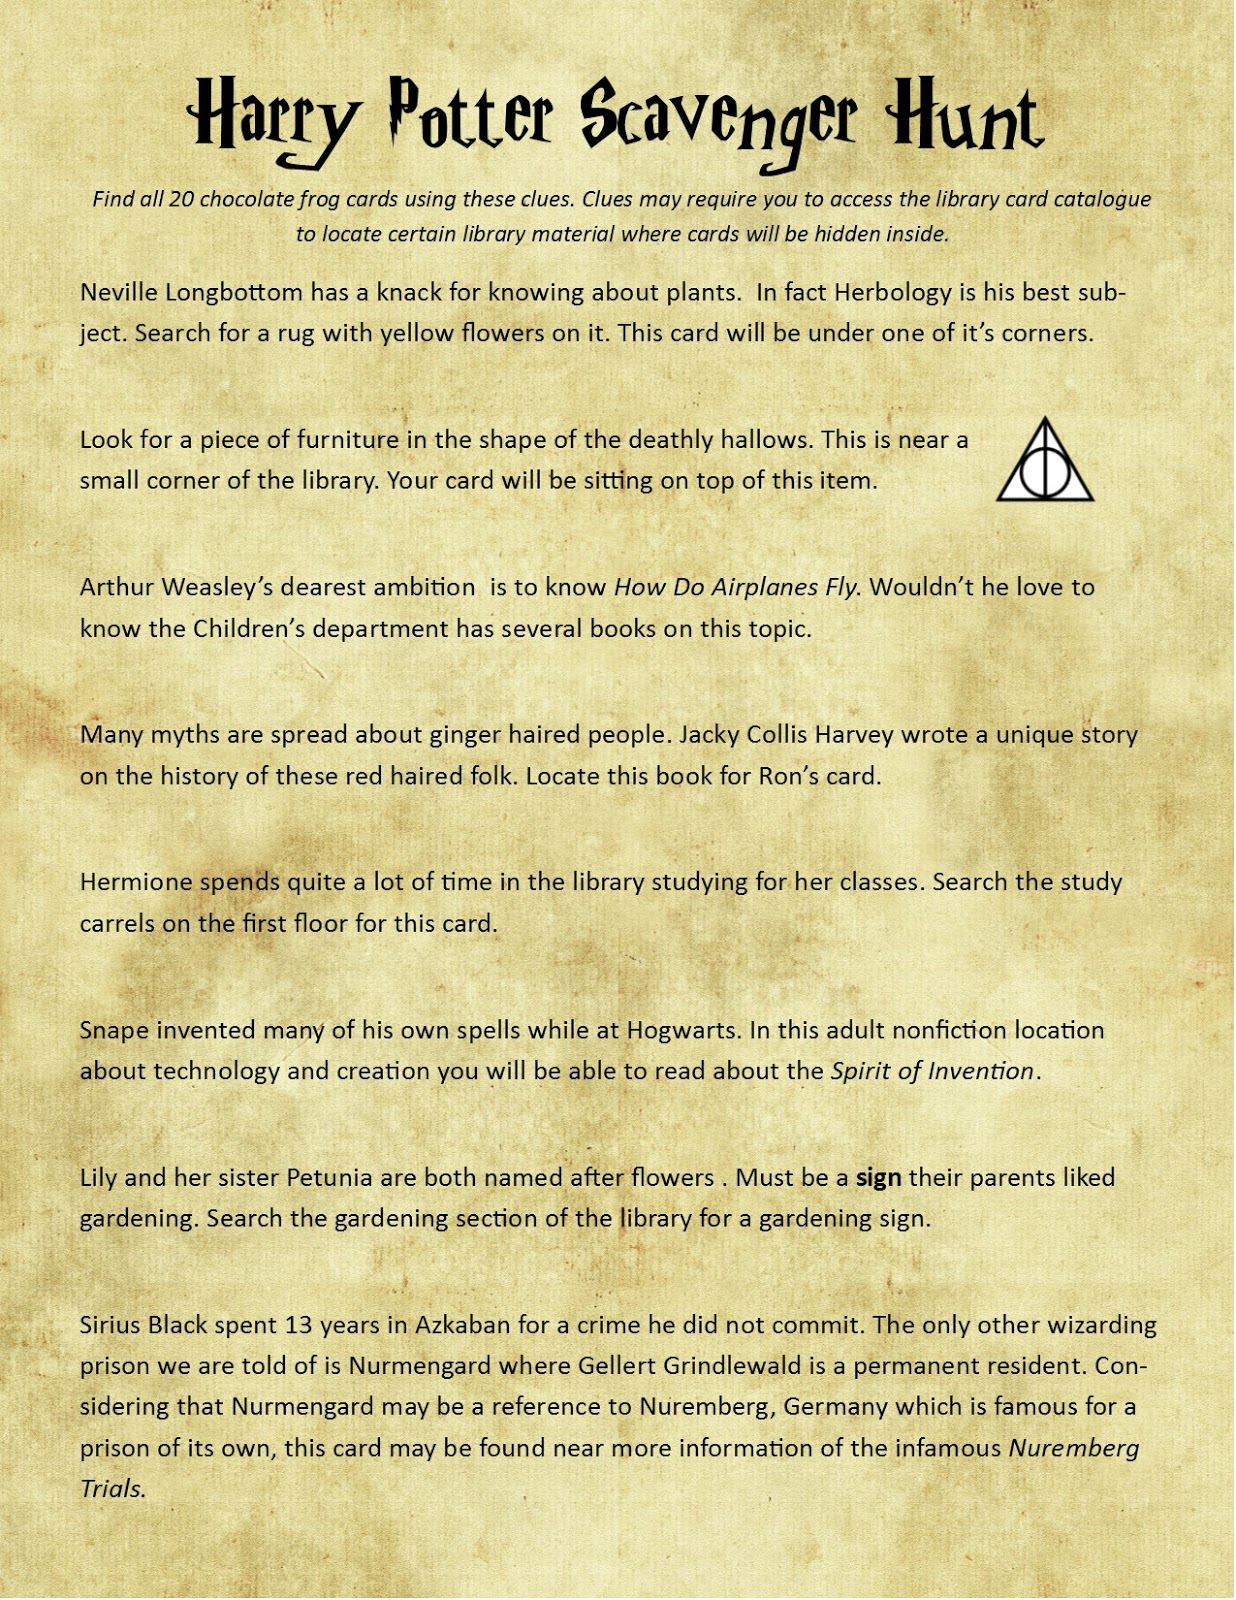 Teen Harry Potter Scavenger Hunt In The Library